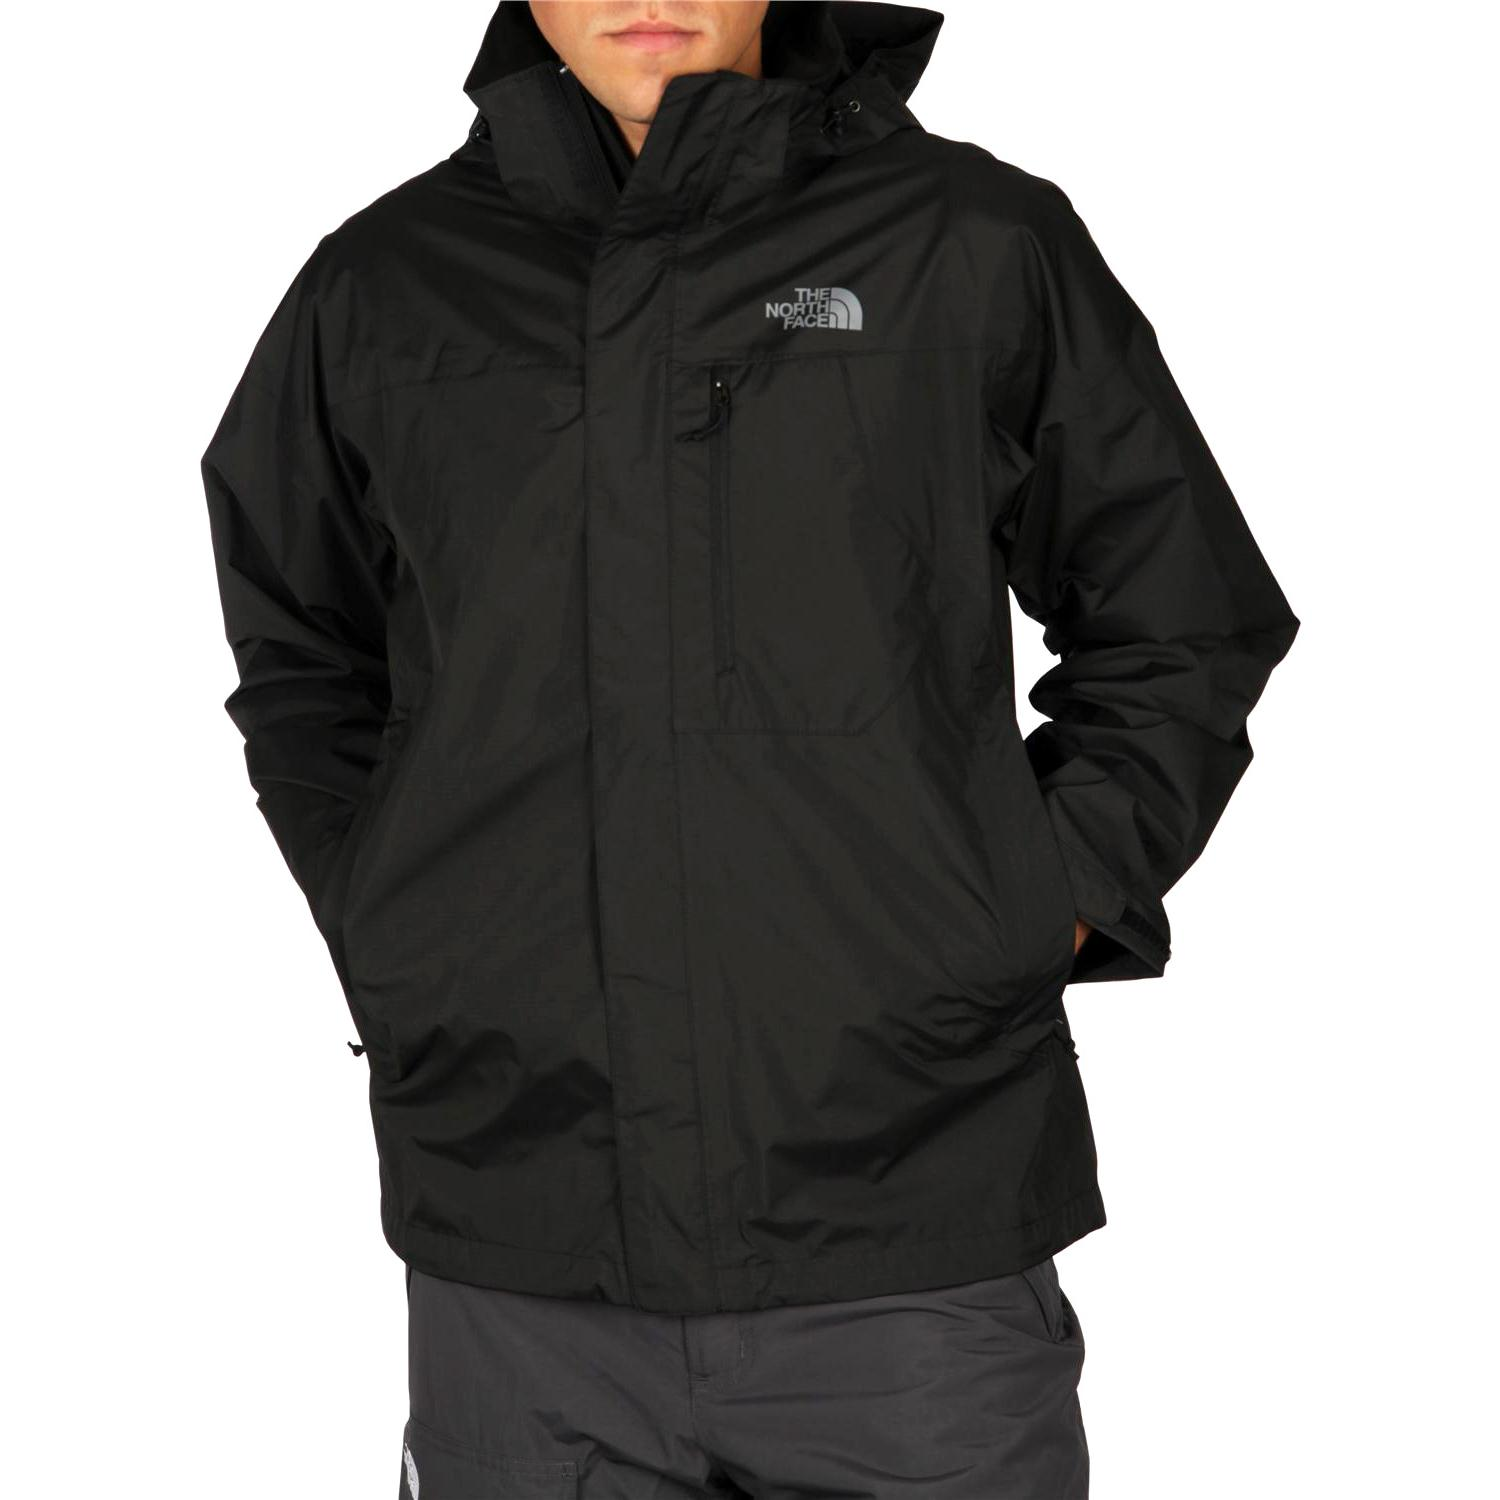 all the north face sale the north face lowest price guarantee customer. Black Bedroom Furniture Sets. Home Design Ideas